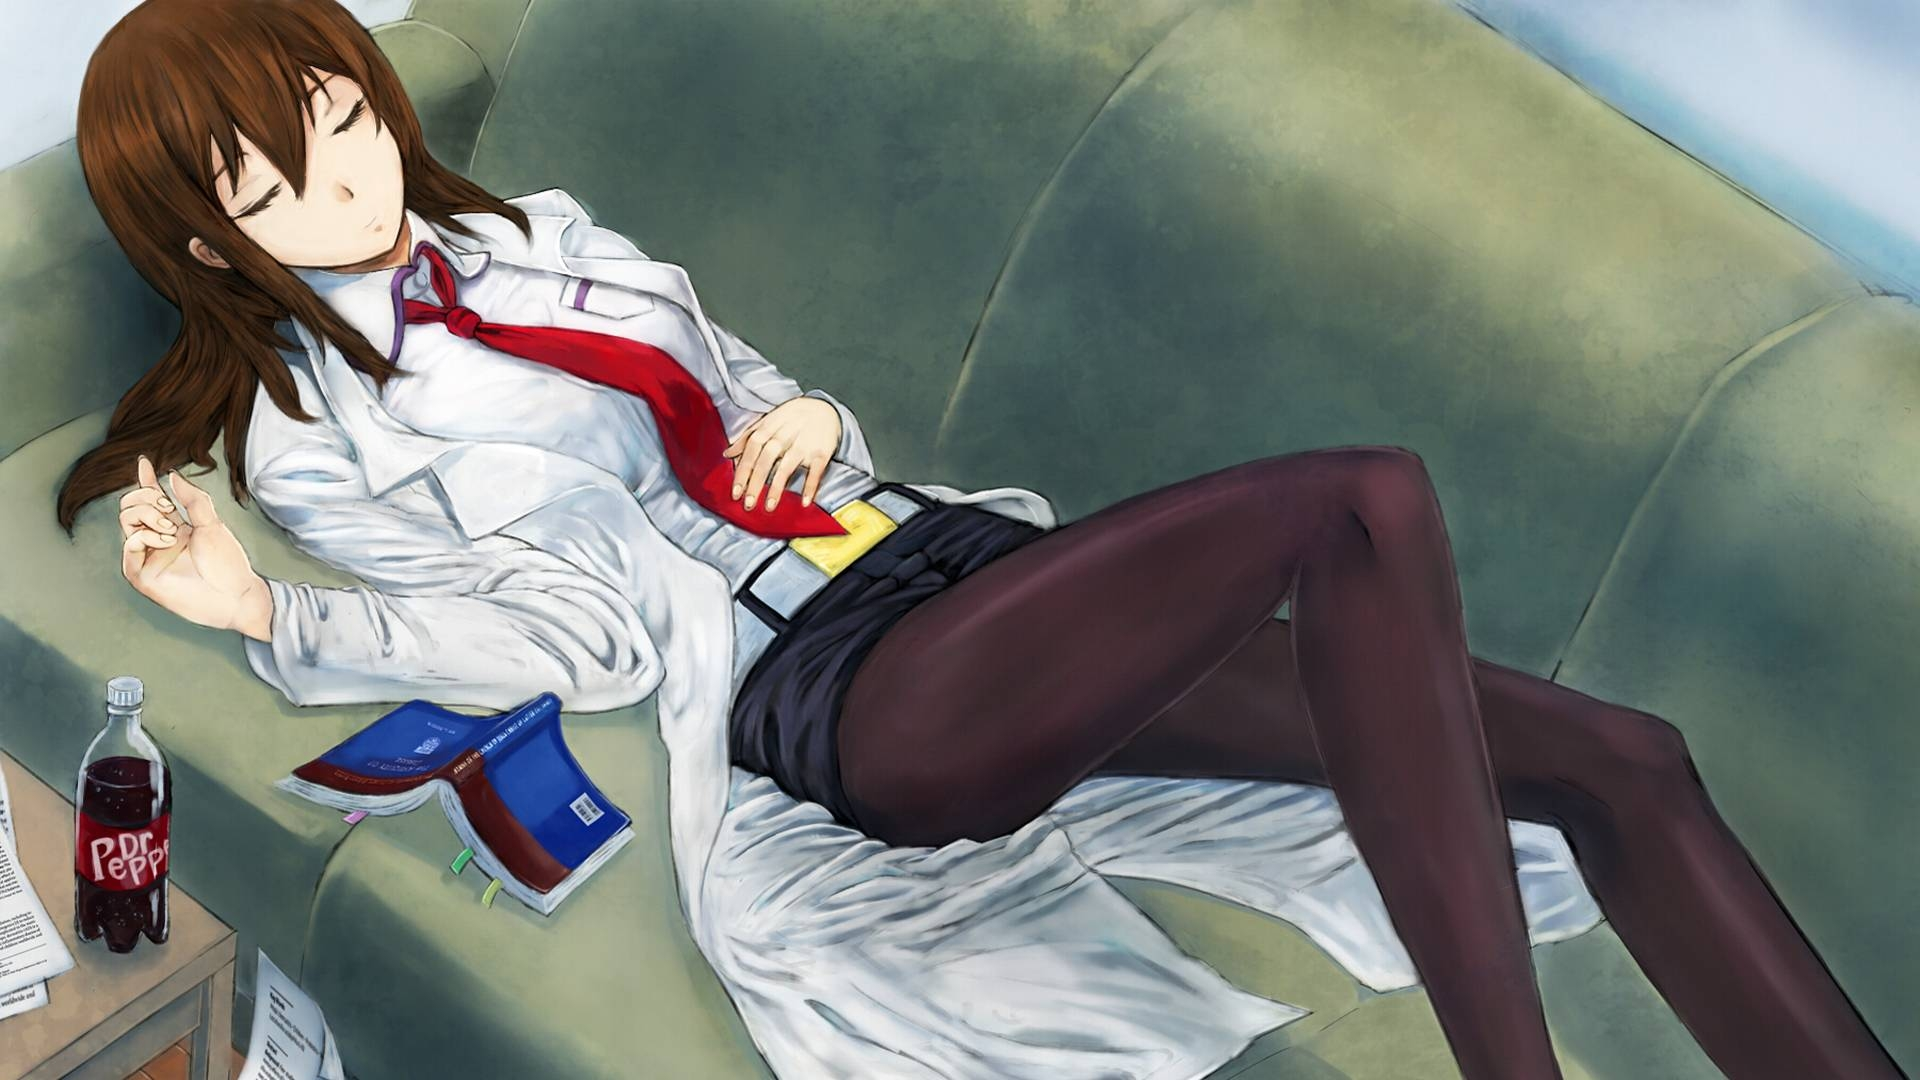 Kurisu makise lab coat